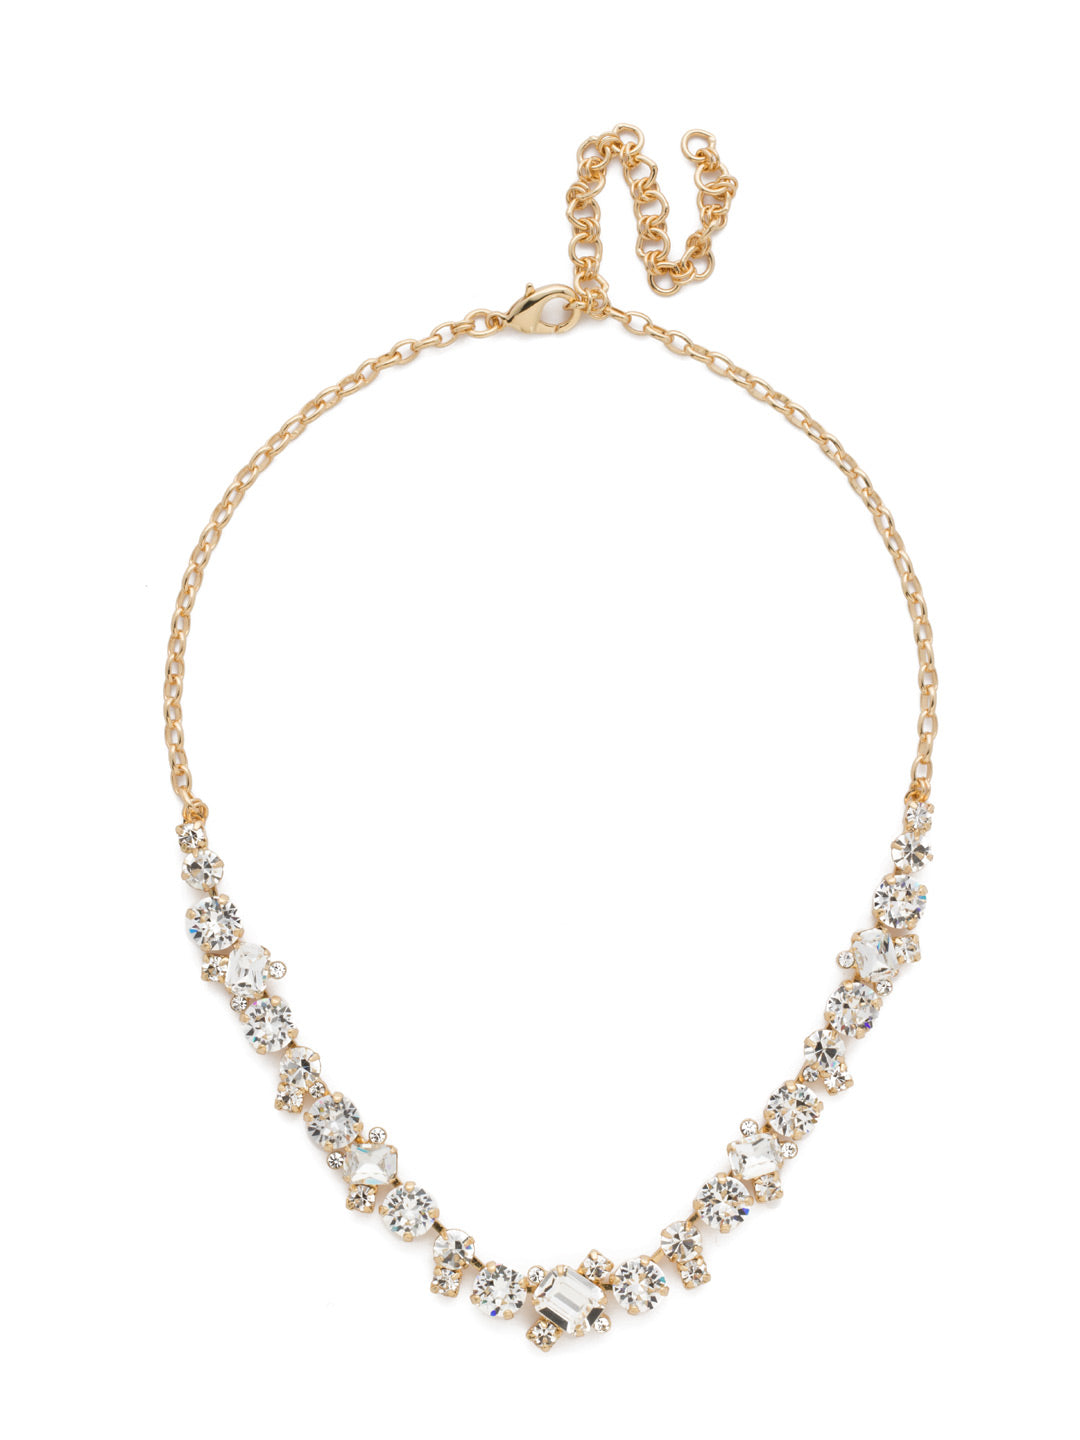 Novelty Multi-Cut Crystal Necklace - NDB78BGCRY